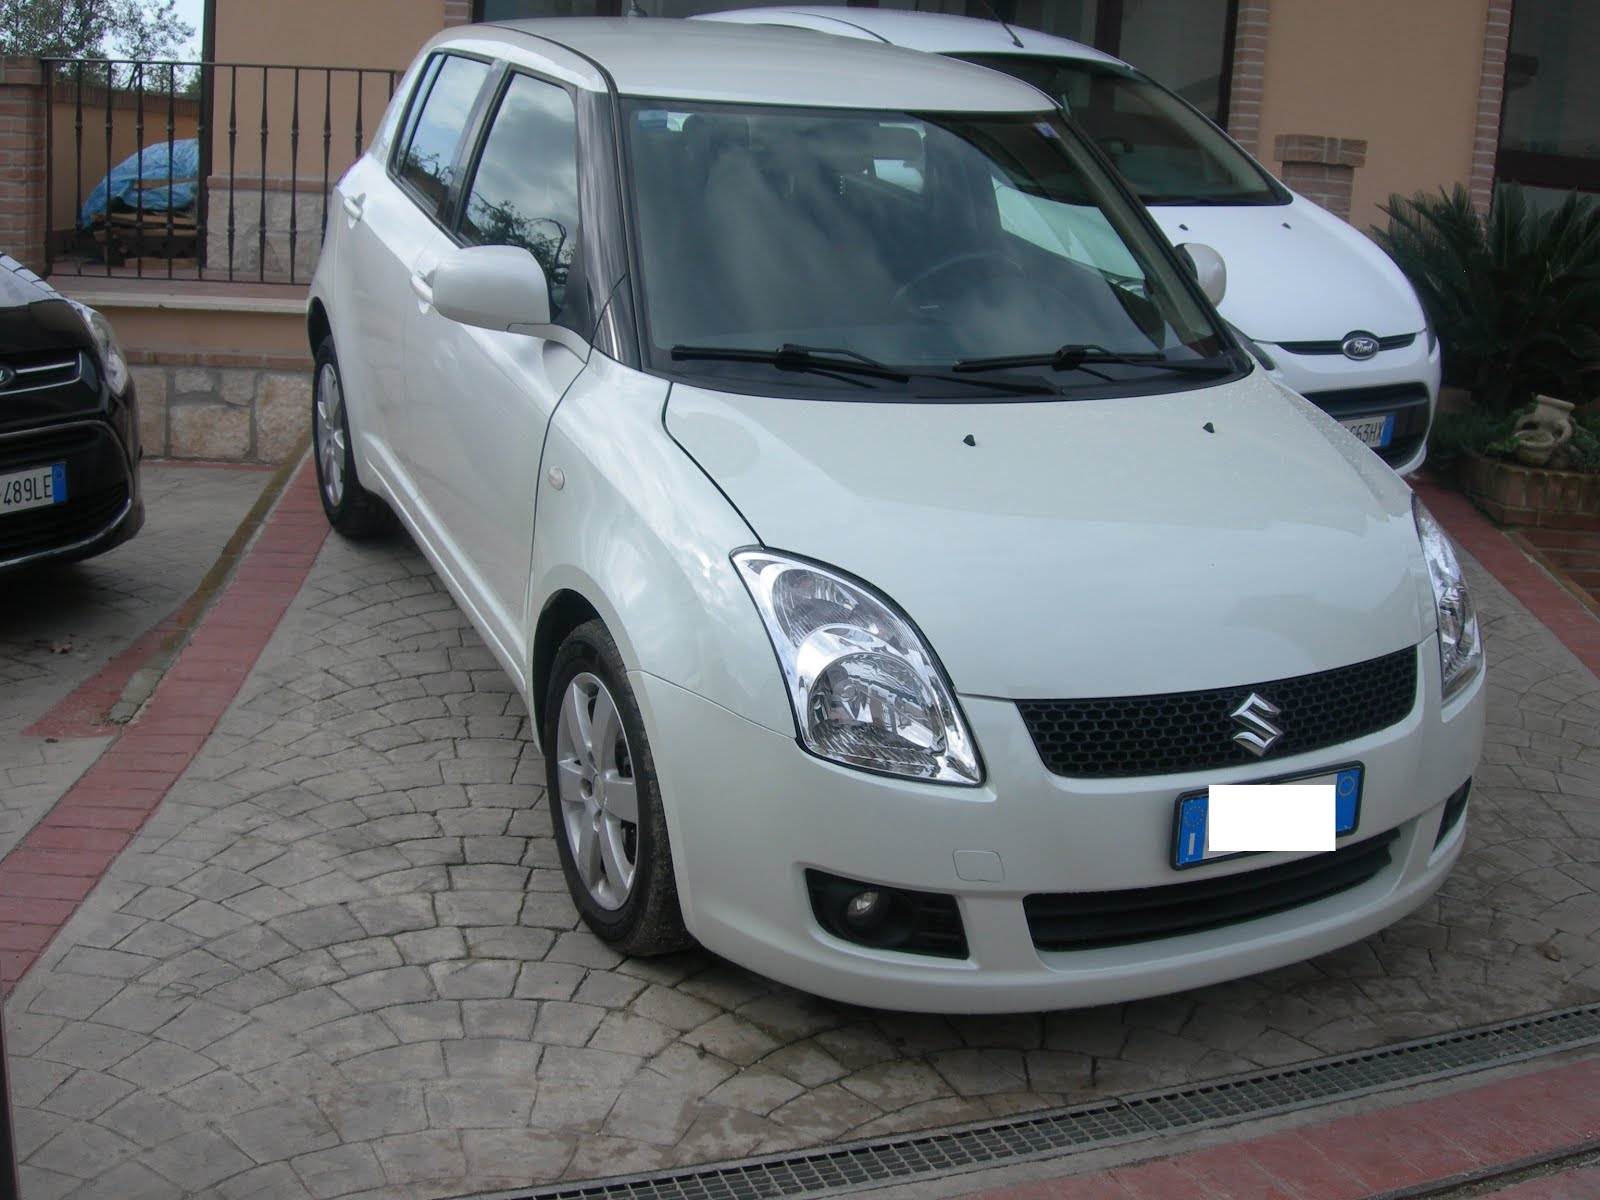 SUZUKI SWIFT 1.3 BENZINA 4X4 ACC: FULL OPTIONAL ANNO 2009 CON 120.000 KM PREZZO 5.000,00 EURO